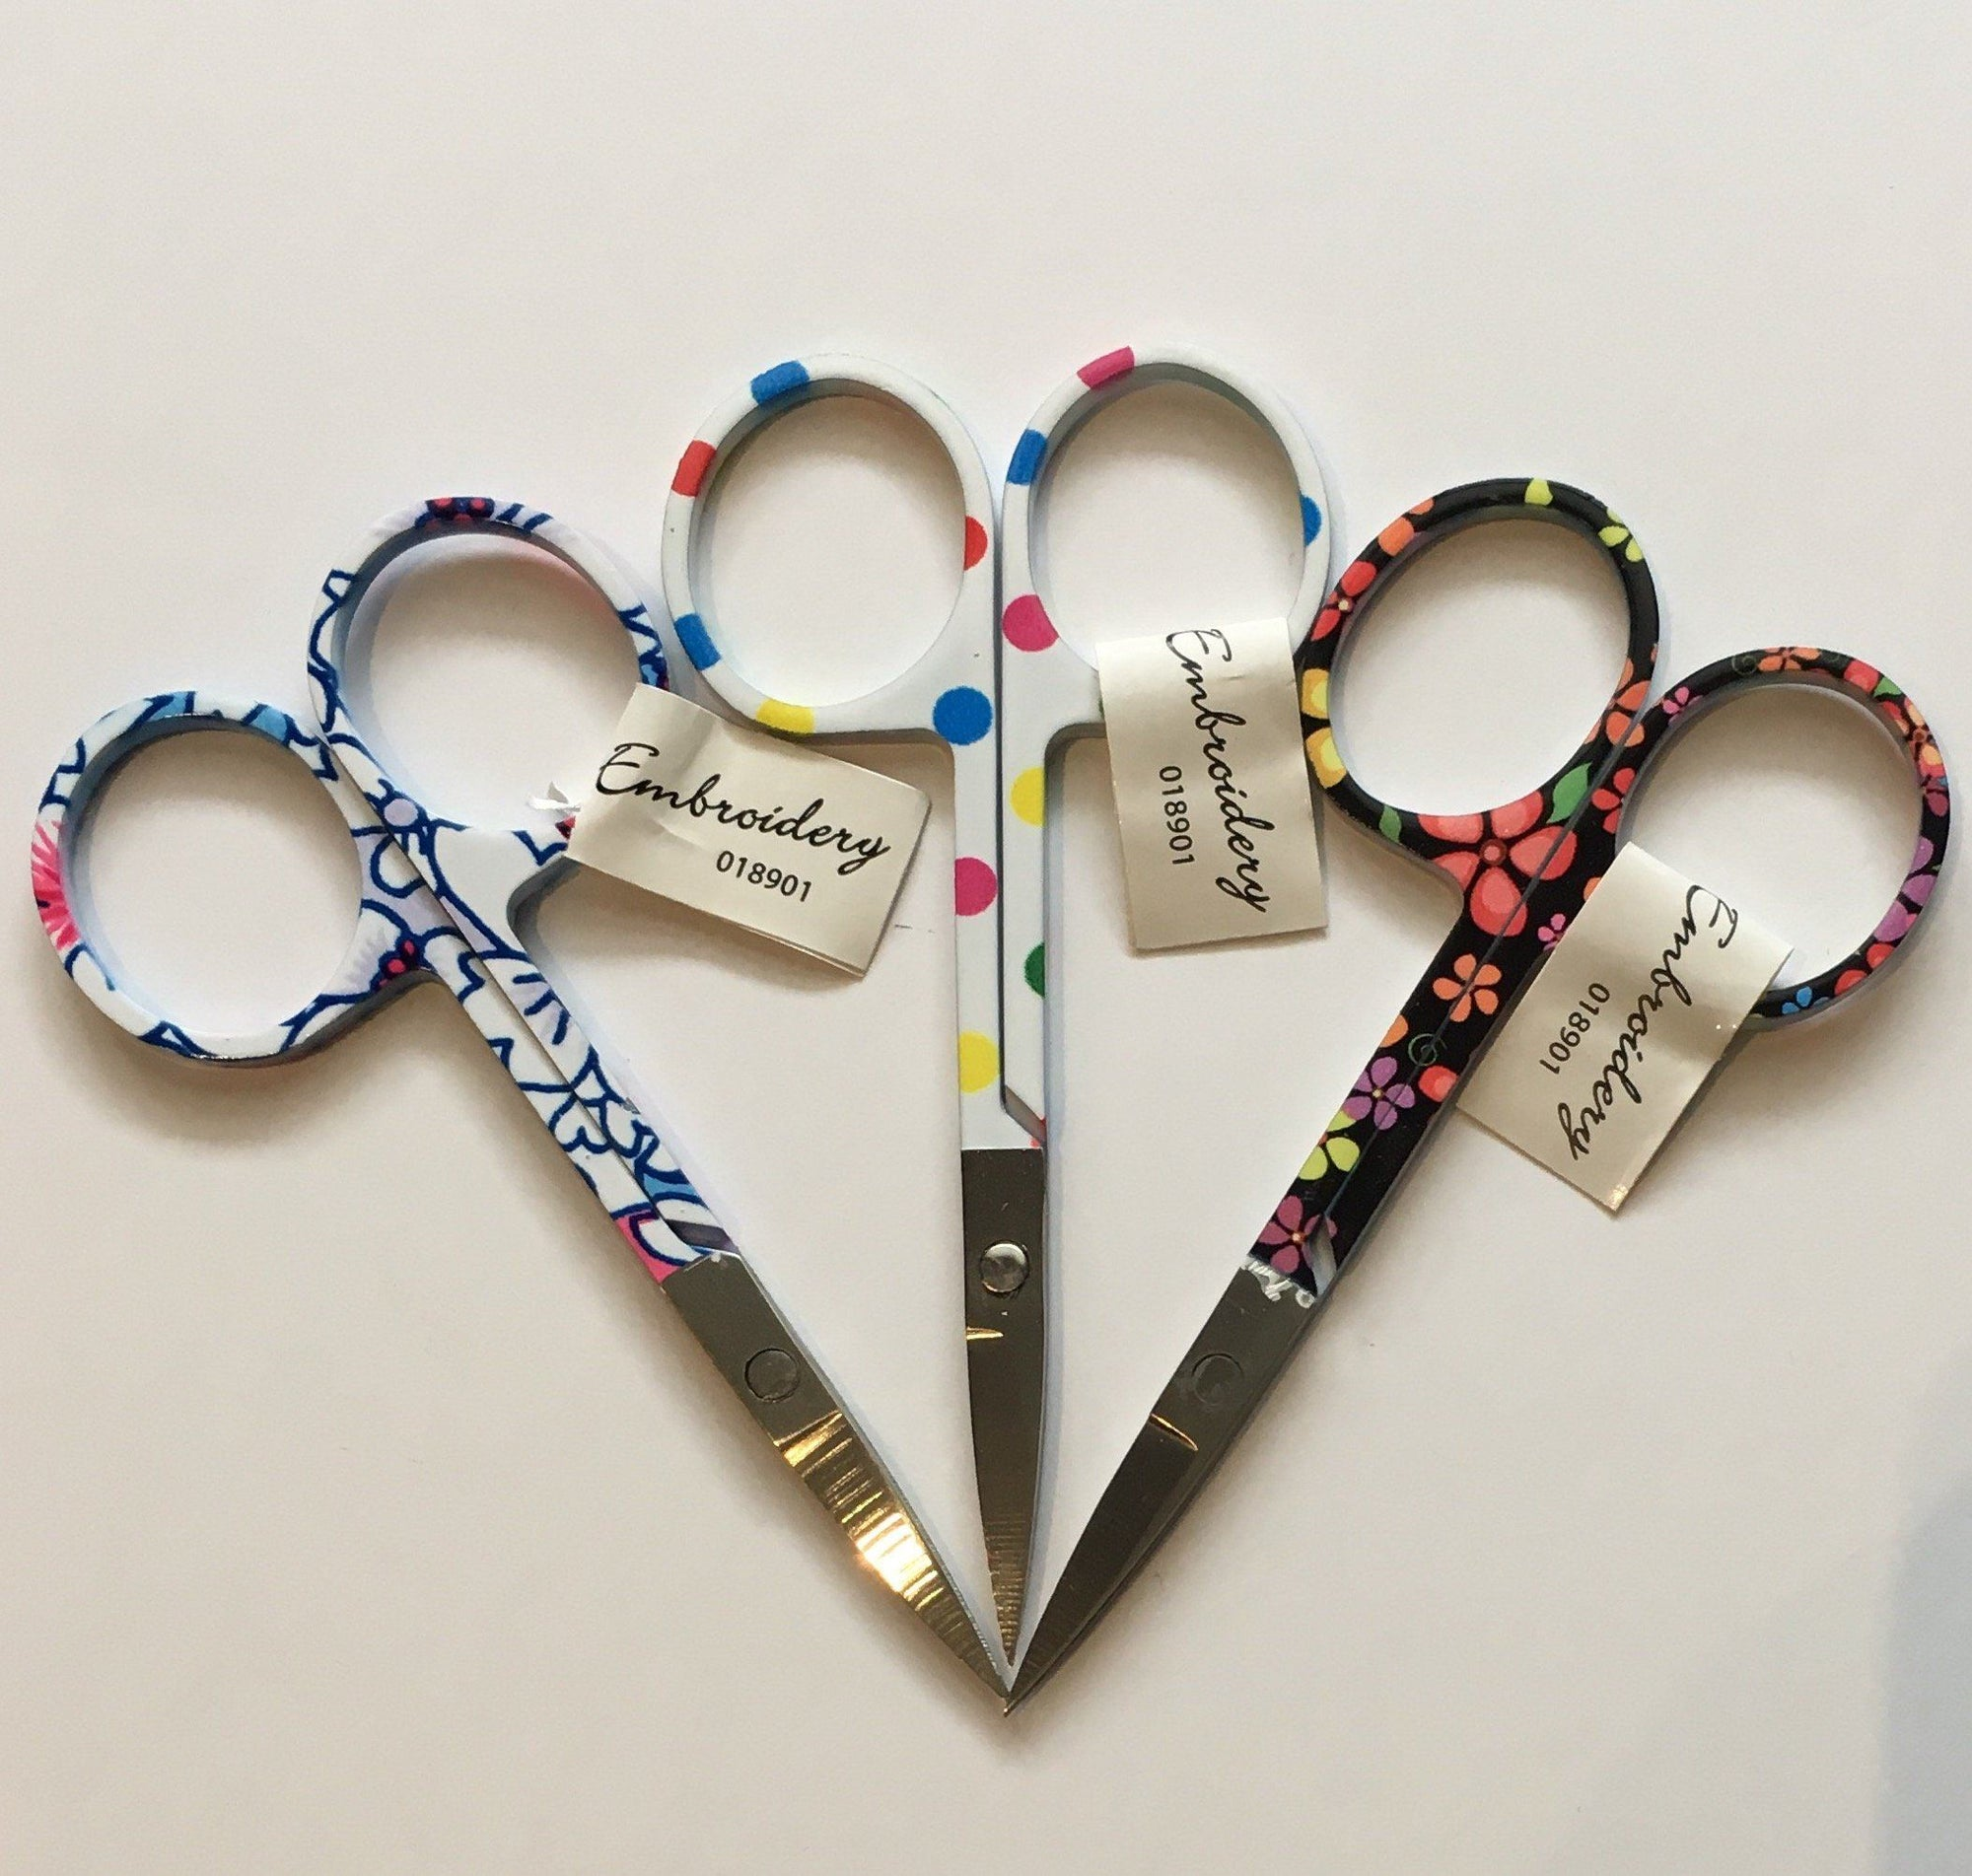 Small Embroidery Scissors